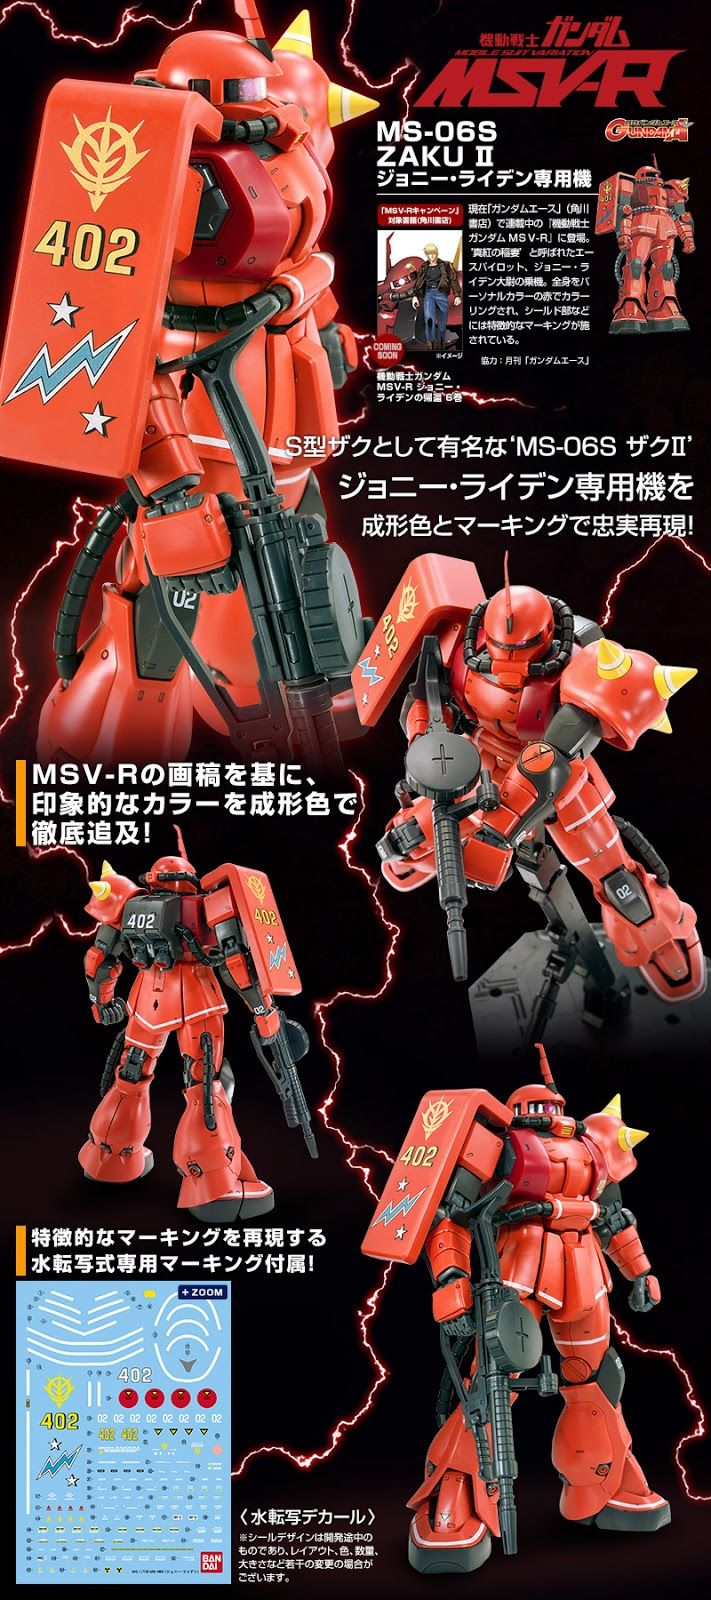 P-Bandai: MG 1/100 Zaku II Johnny Ridden custom (MSV-R ver.) [REISSUE] - Release Info - Gundam Kits Collection News and Reviews